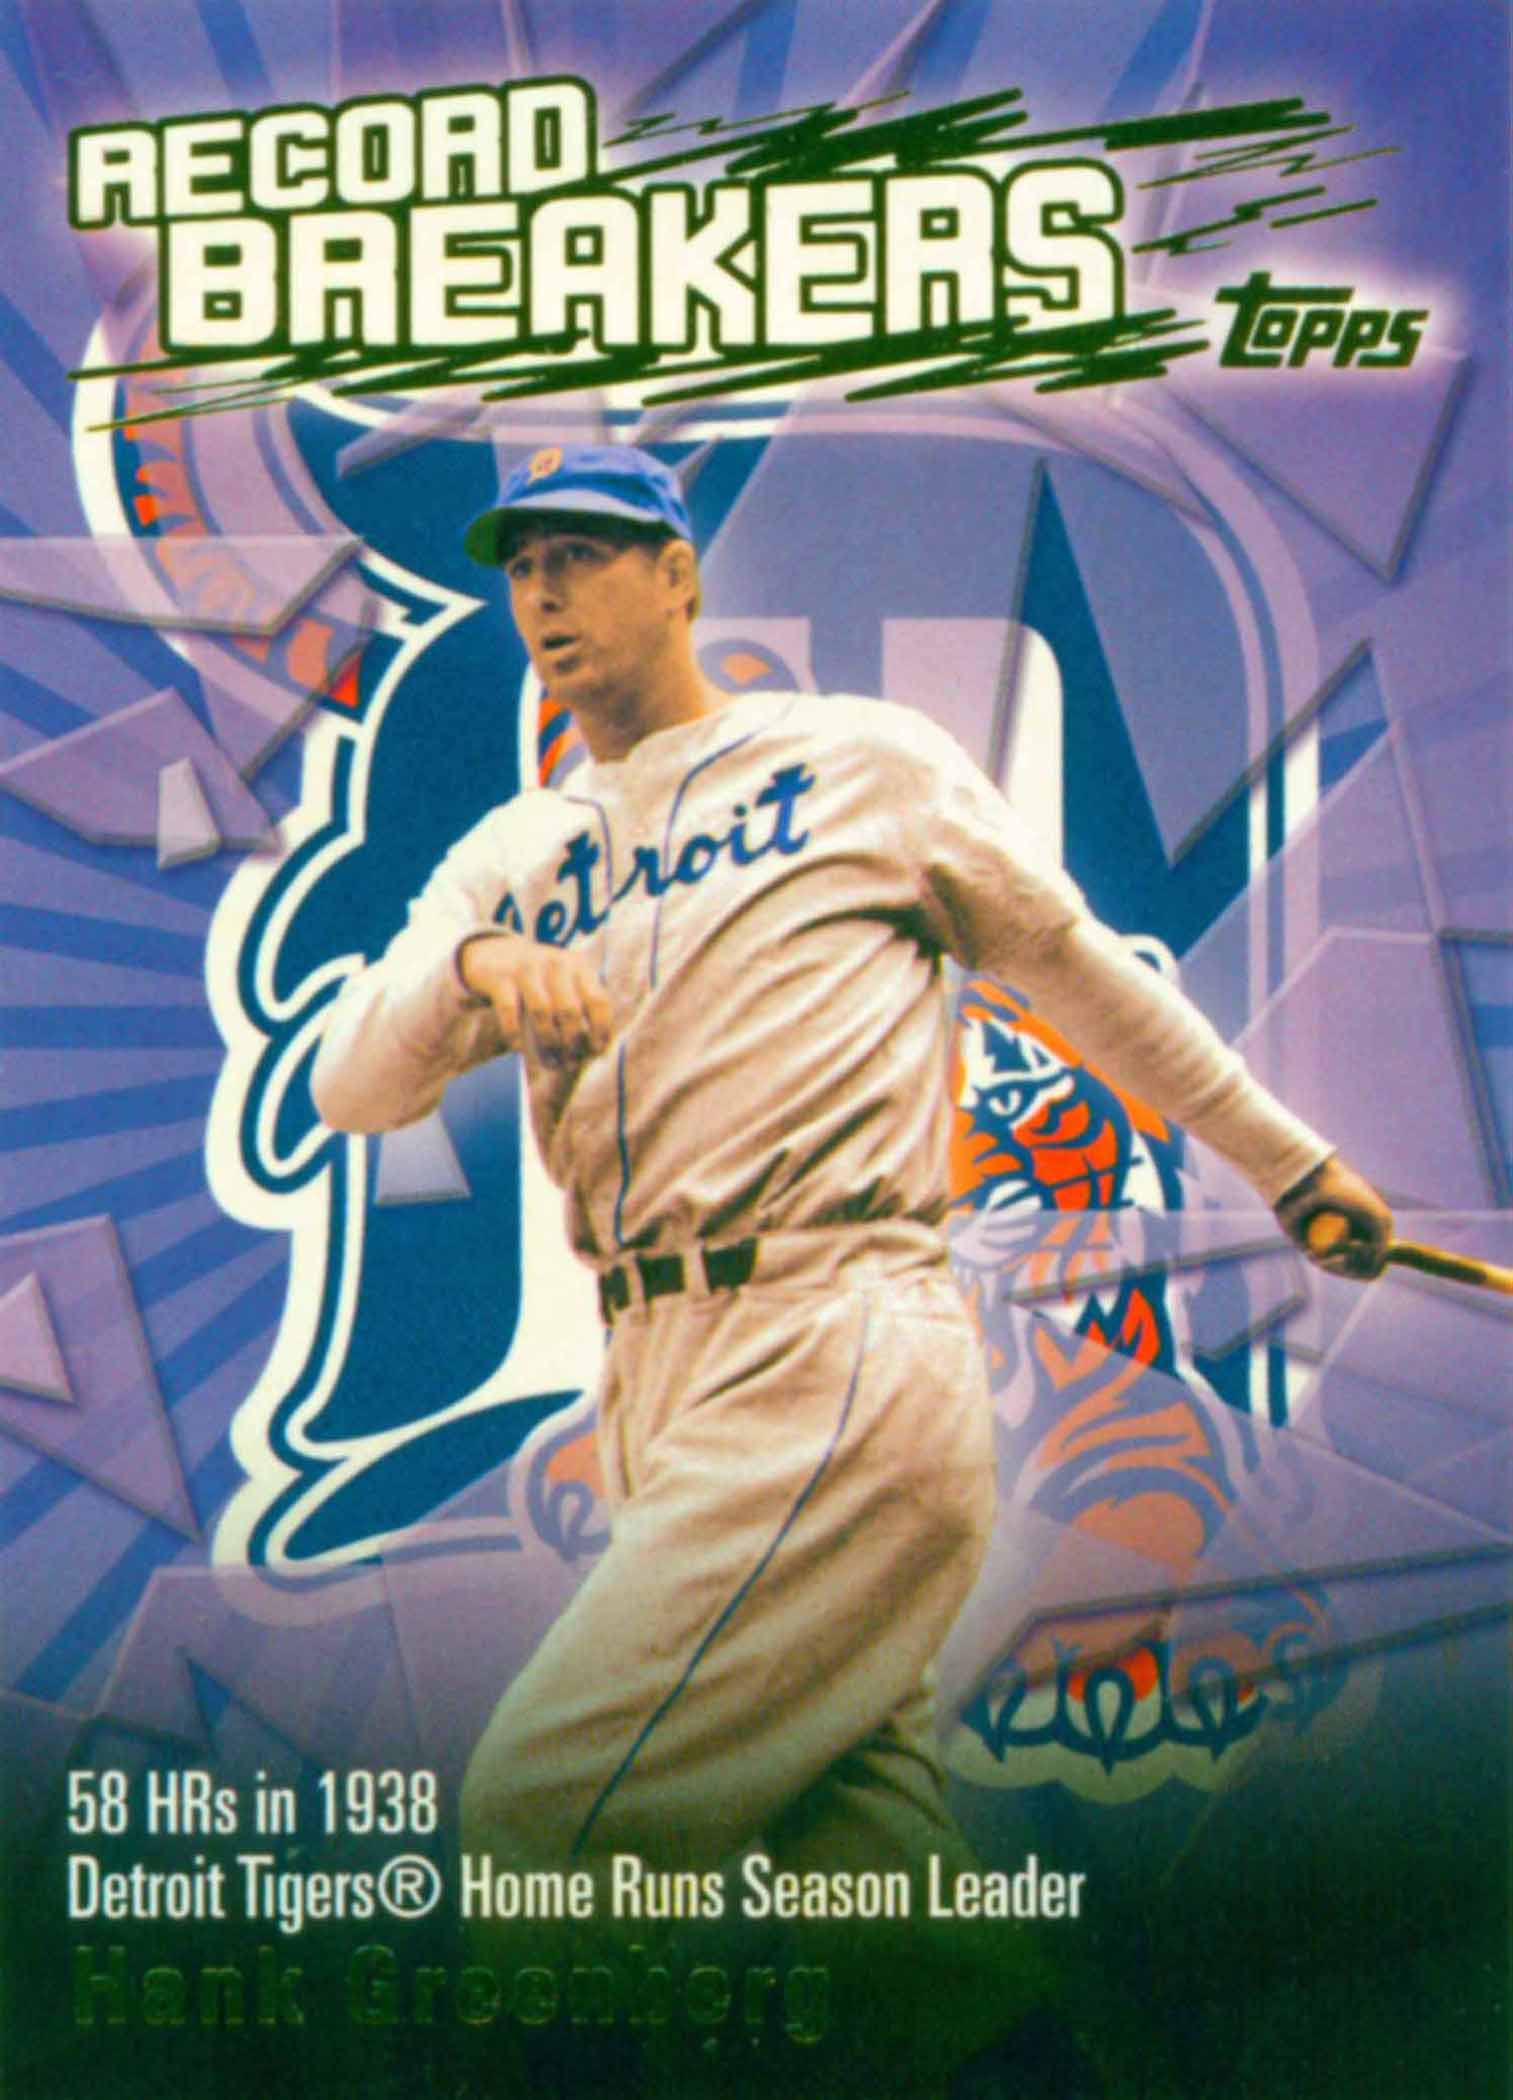 2003 Topps Record Breakers